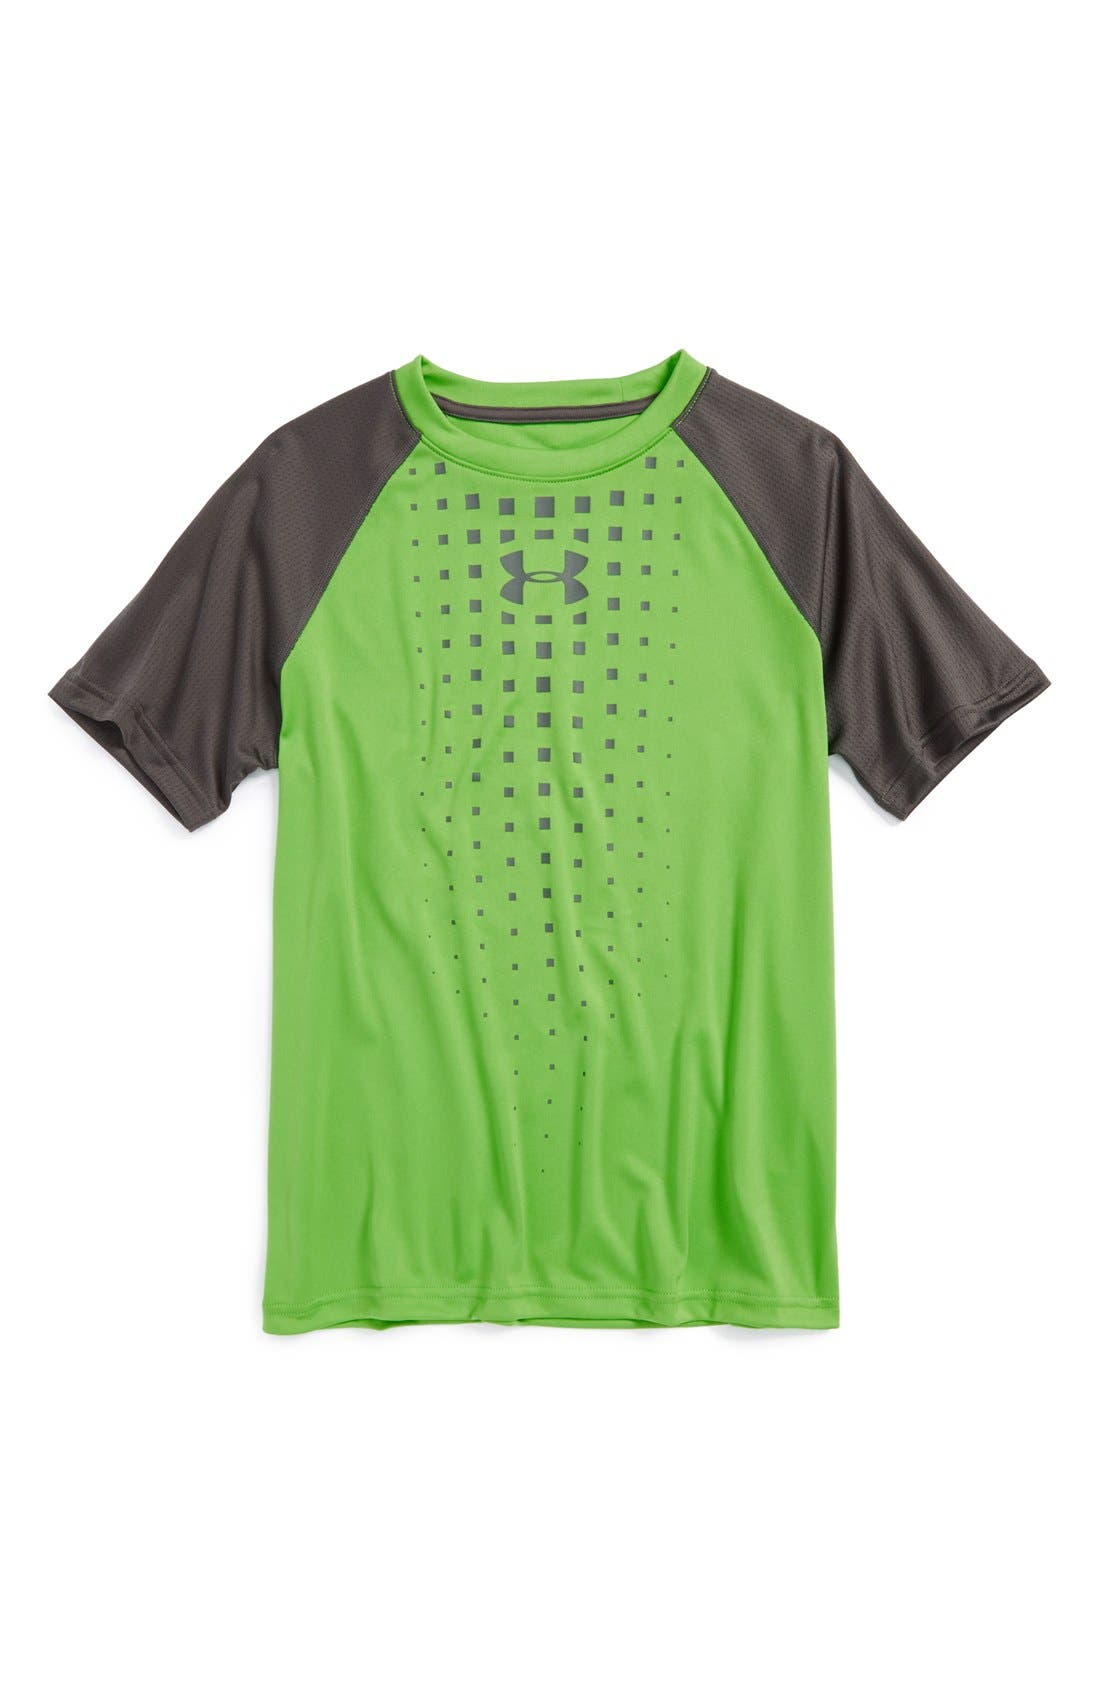 Alternate Image 1 Selected - Under Armour 'Awesomeness' HeatGear® Short Sleeve T-Shirt (Little Boys)